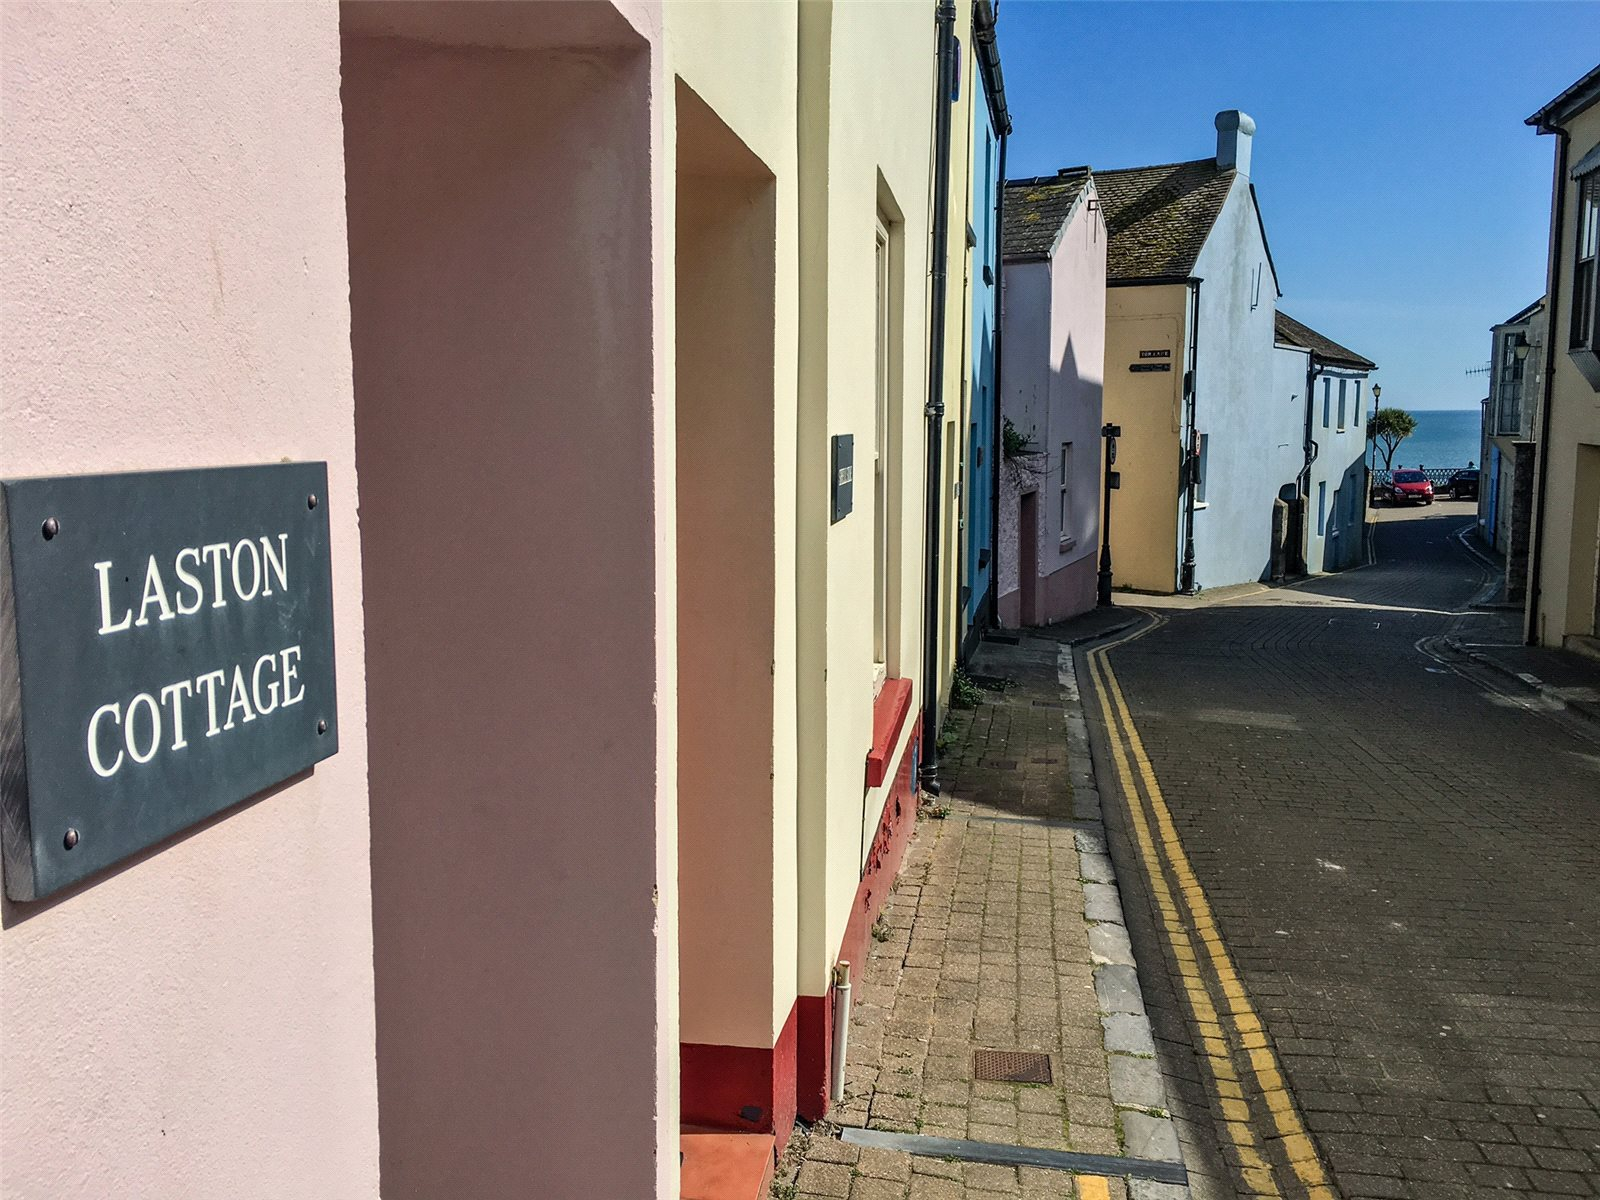 3 Bedrooms Terraced House for sale in Laston Cottage, Cresswell Street, Tenby, Pembrokeshire